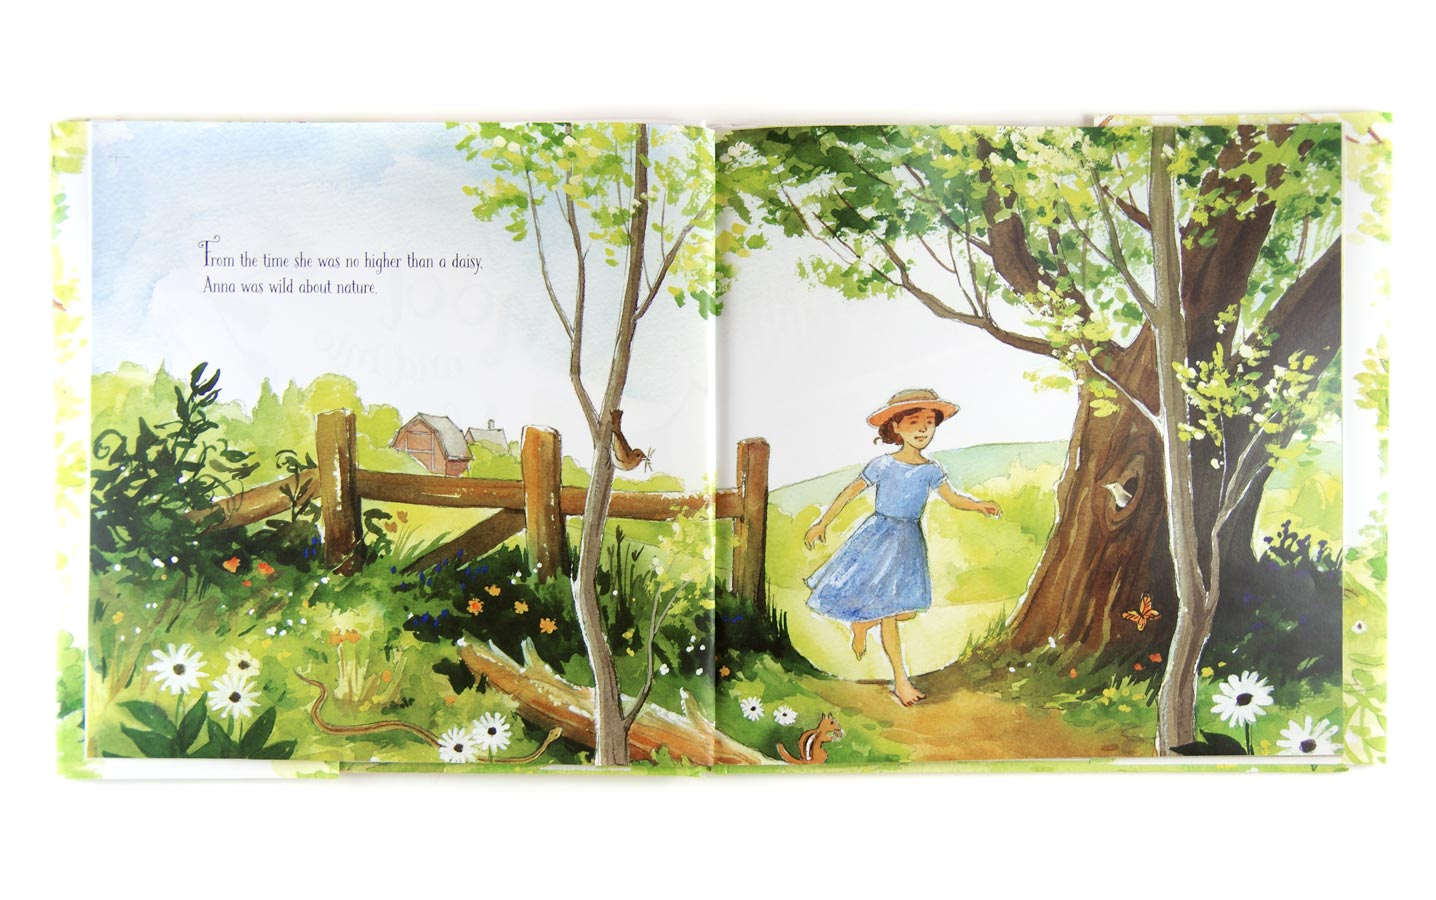 Photograph of first pages of Out of School and Into Nature, showing a young girl in a blue dress and straw hat running barefoot along a dirt path through the countryside on a sunny day. Details show butterflies, birds, and insects in the foliage.